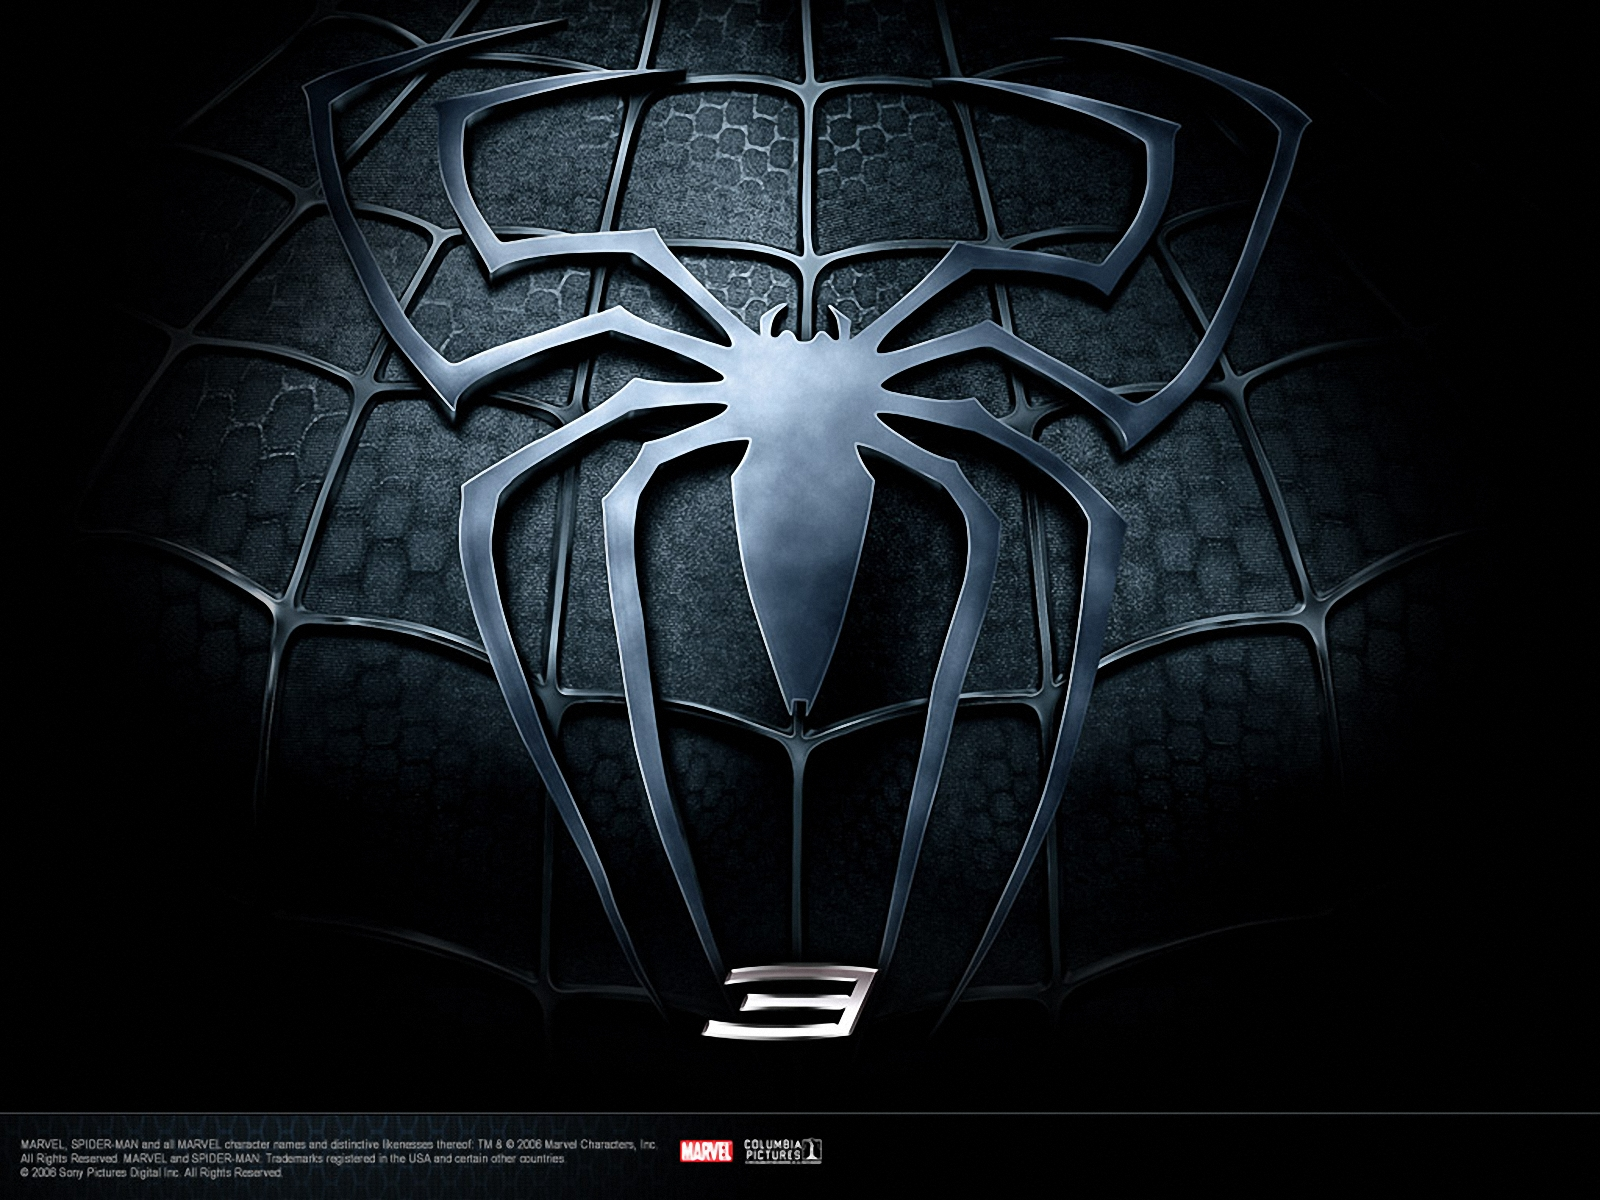 spiderman 3 wallpapers,spiderman 3 photos,spiderman 3 photo,spiderman 3